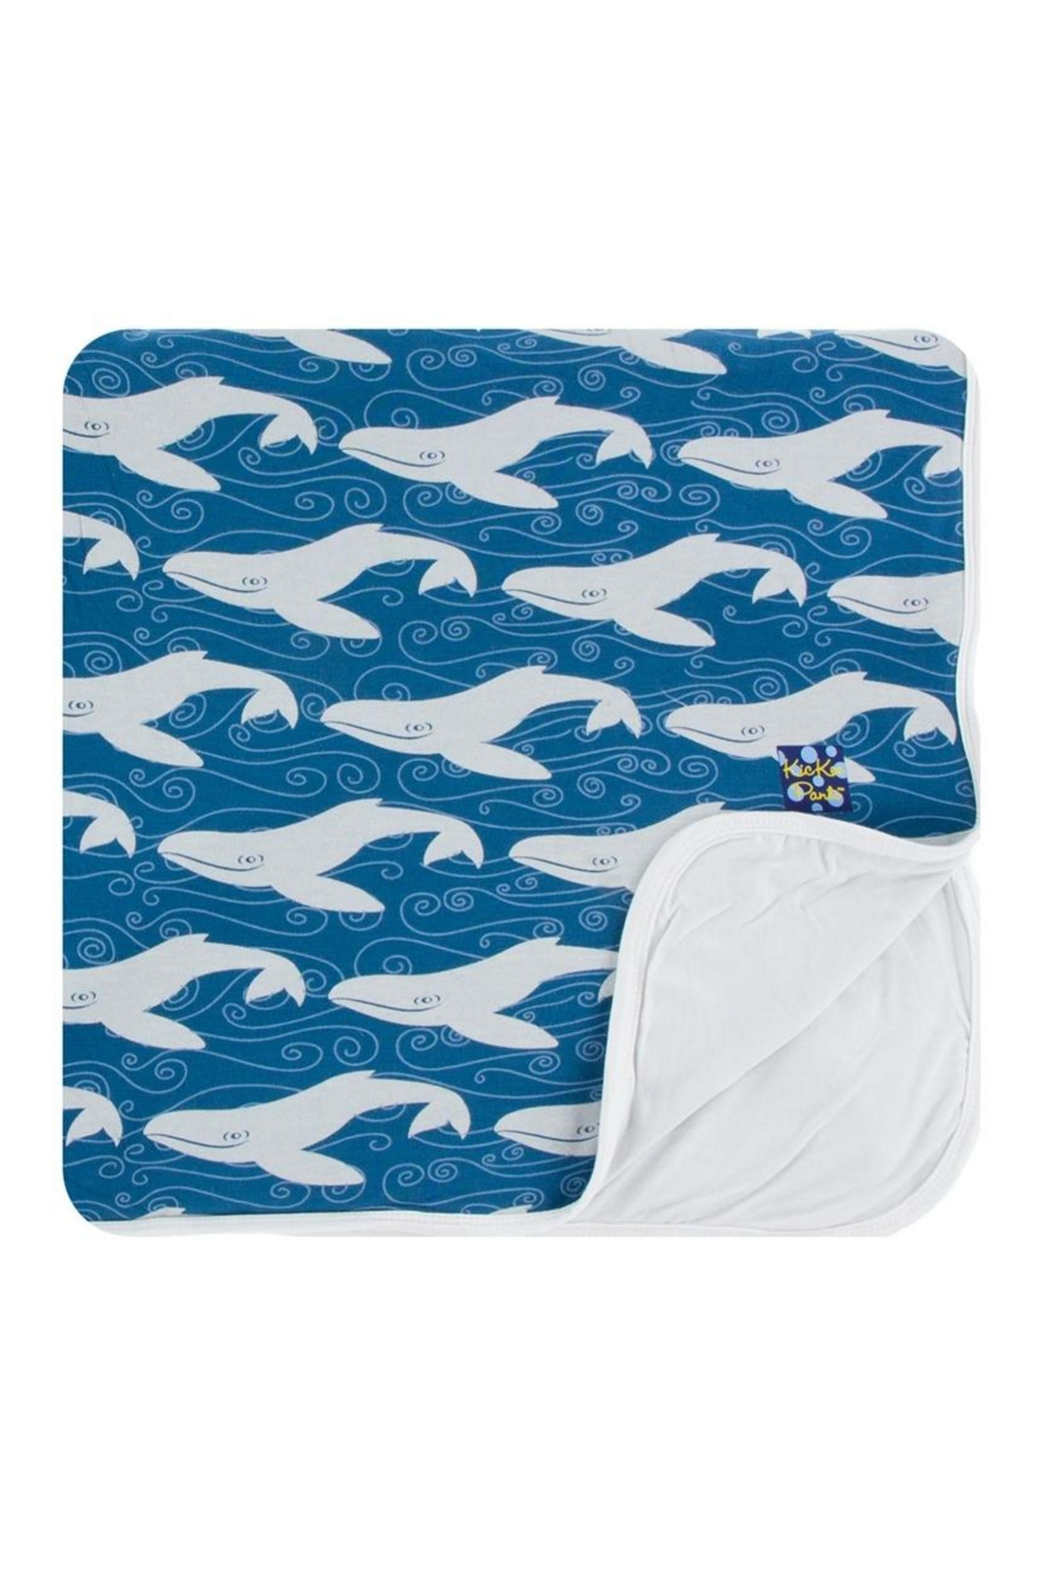 Kickee Pants Twilight Whale Toddler-Blanket - Main Image